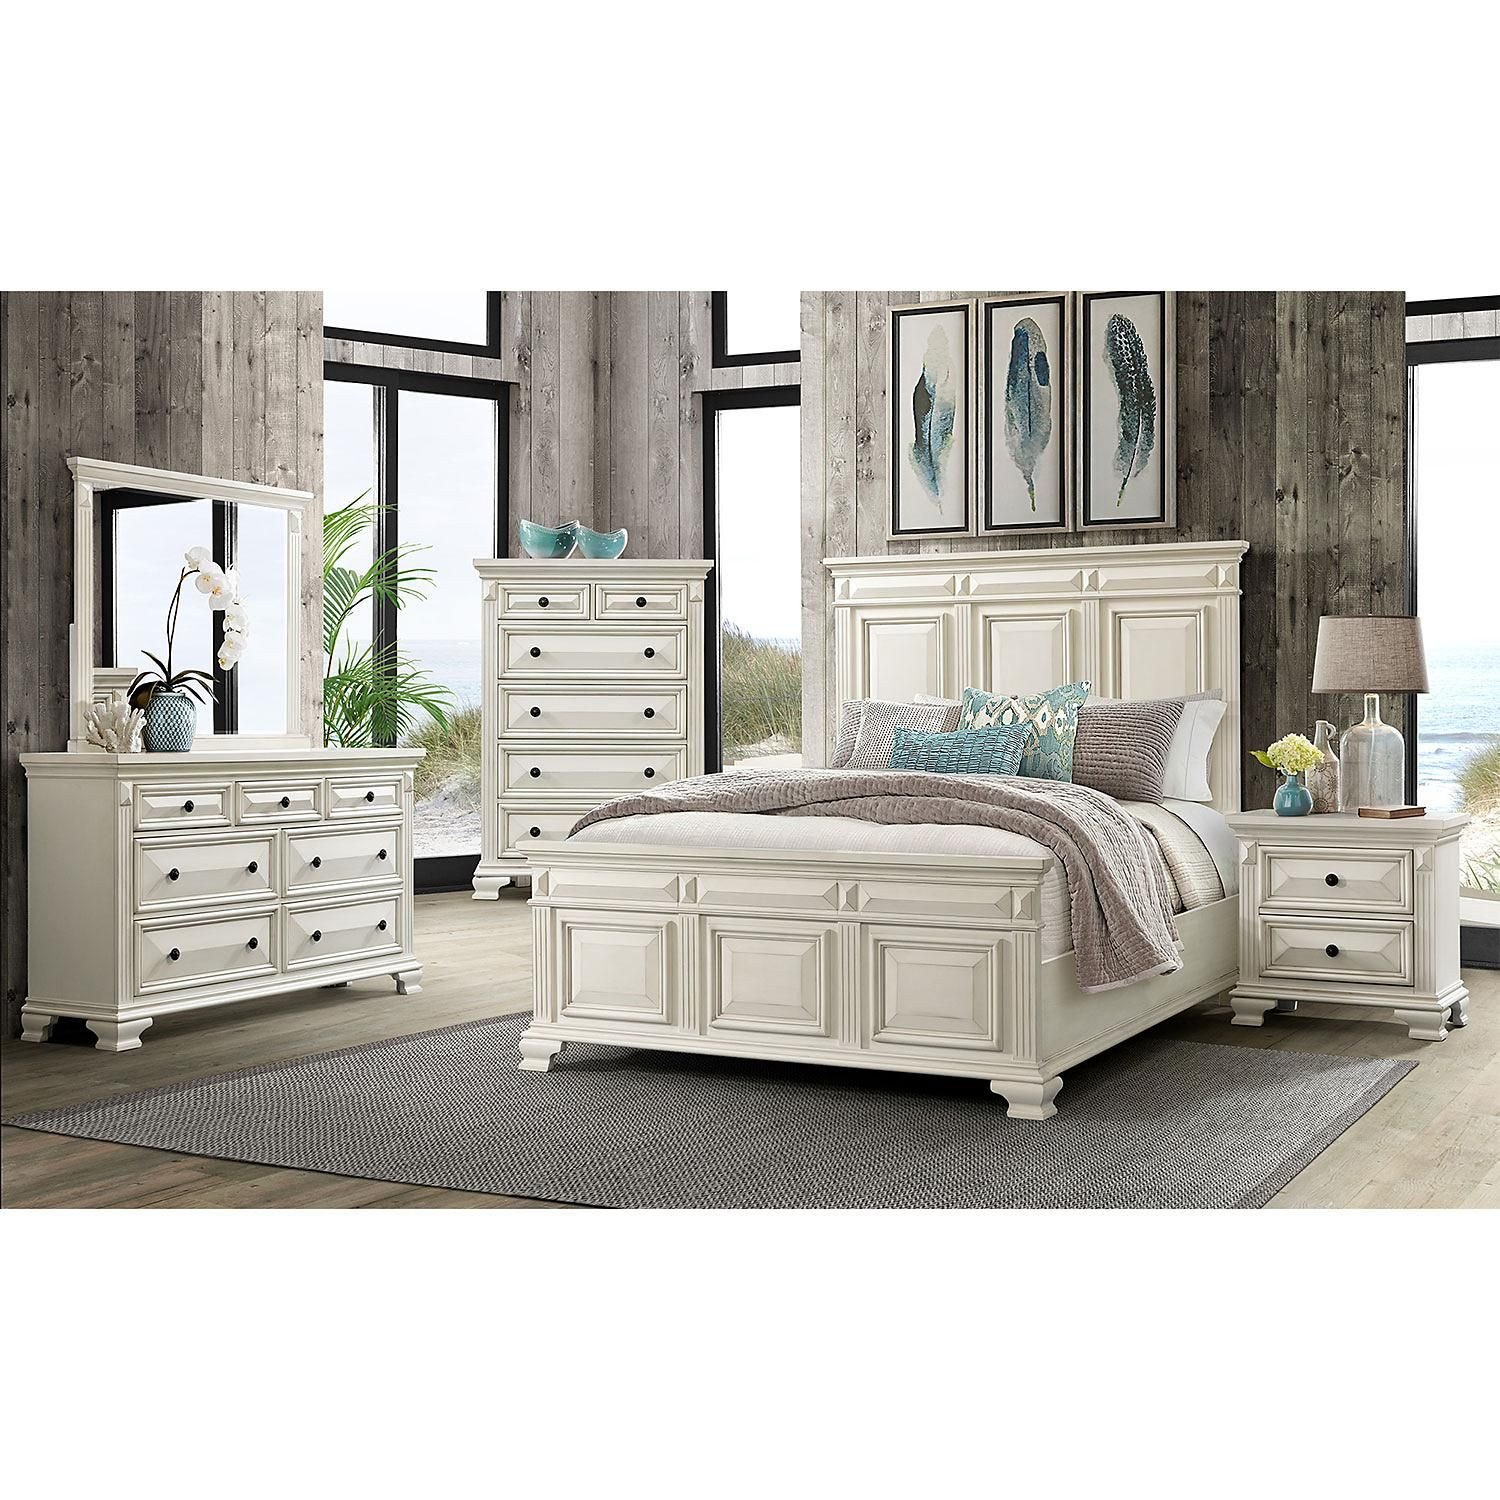 Best Quality Bedroom Furniture Beautiful $1599 00 society Den Trent Panel 6 Piece King Bedroom Set